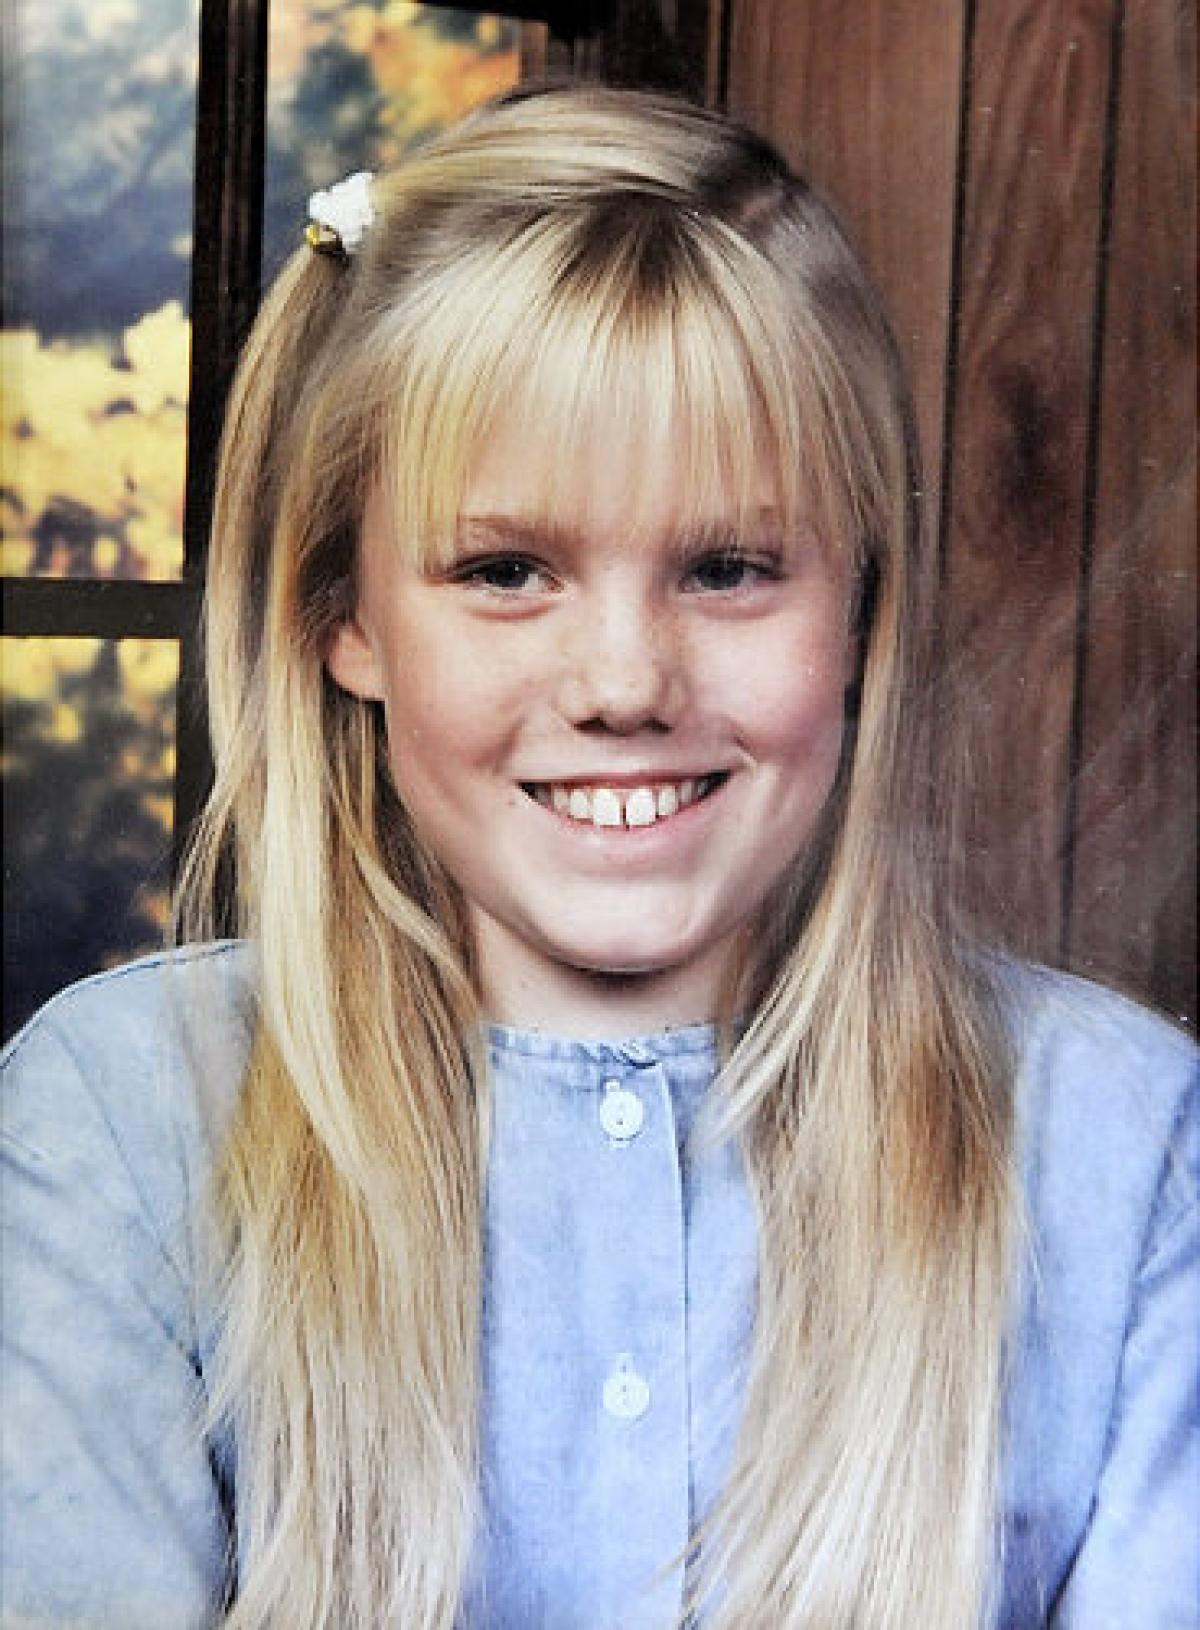 the kidnapping of jaycee dugard Wicked attraction the jaycee dugard story beautiful lucy the story of 3 girls who were kidnapped and kept captive for over jaycee dugard.